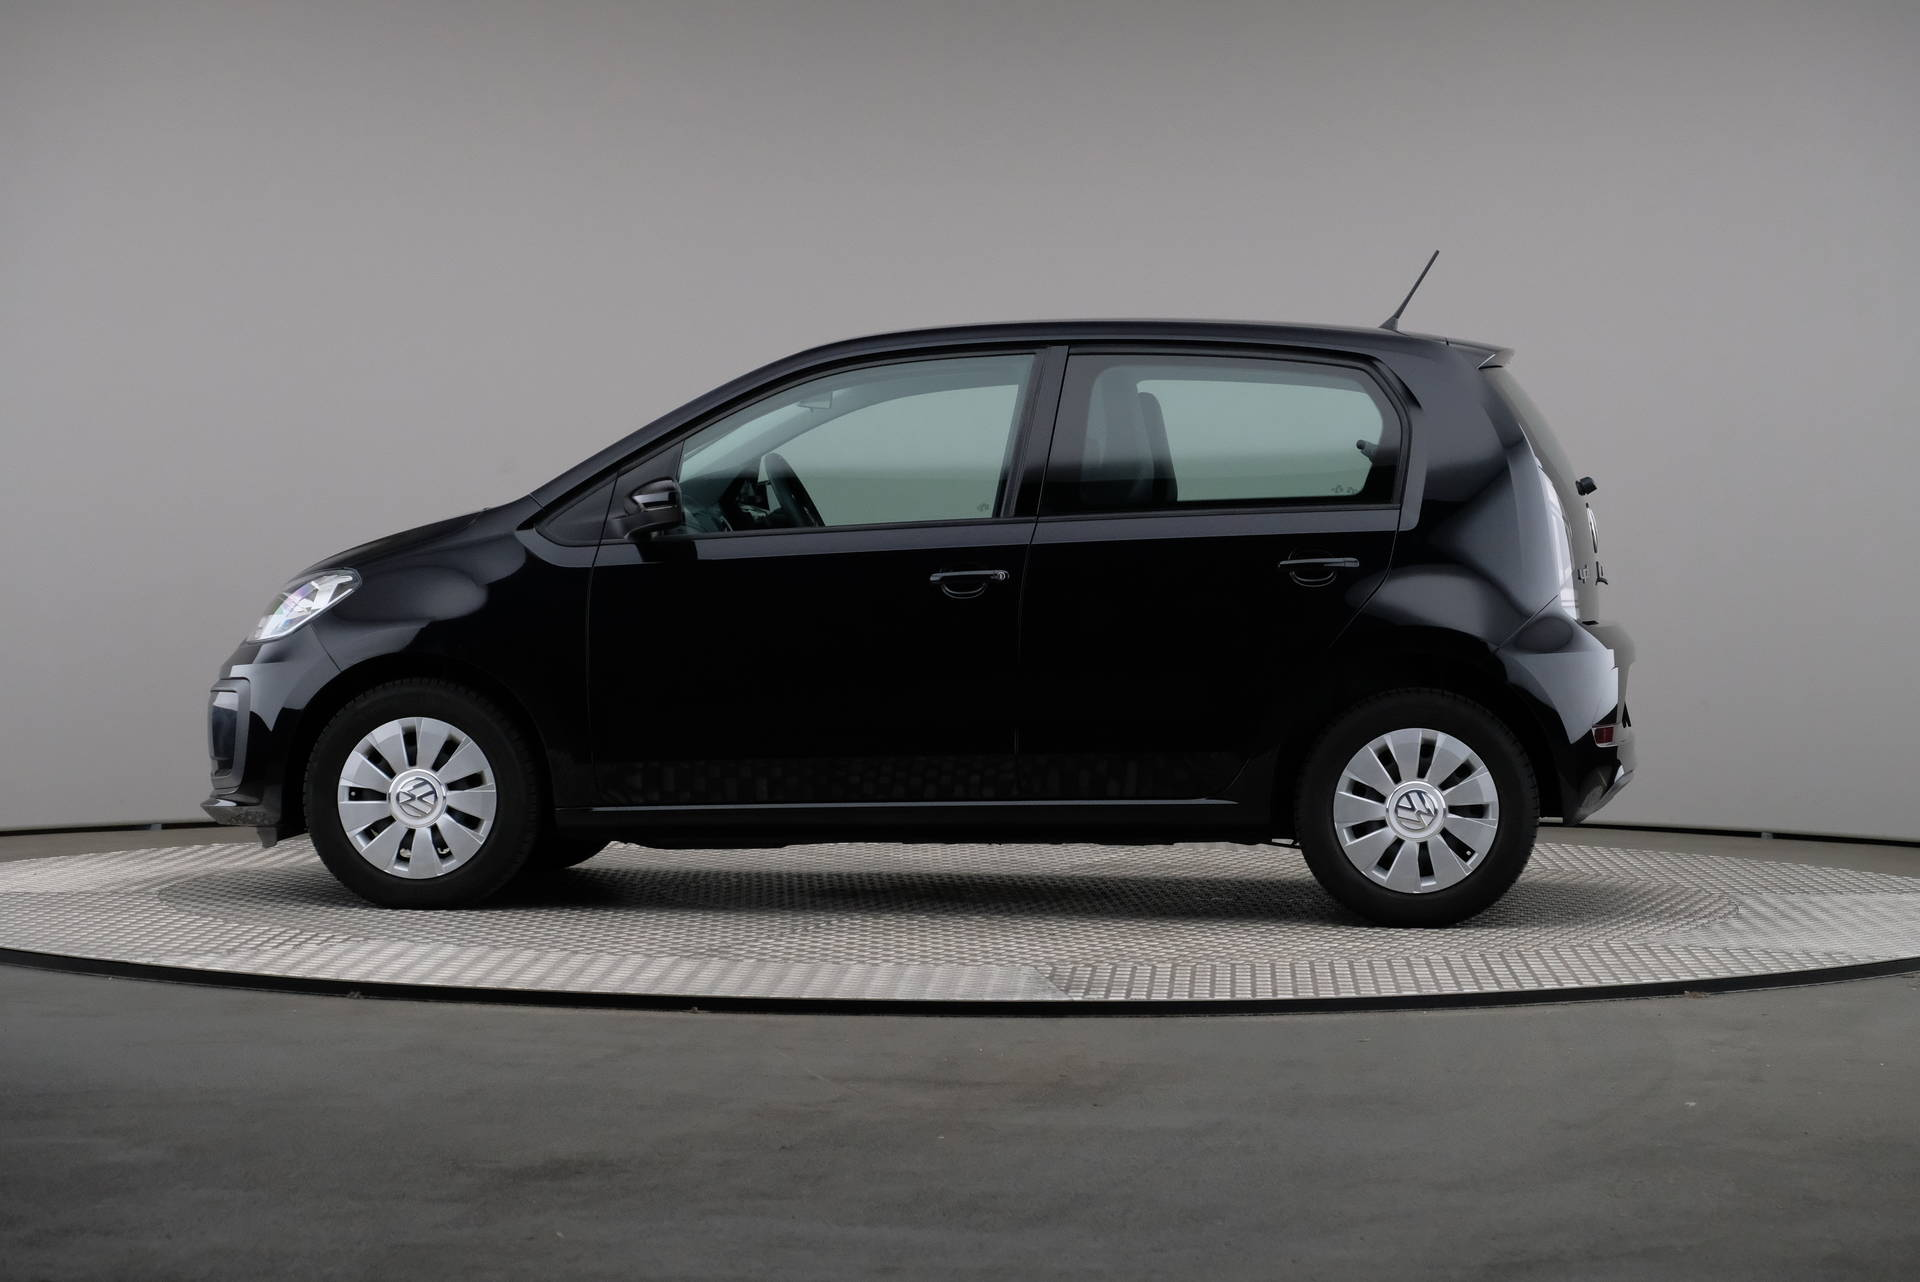 Volkswagen up! 1.0 44kW Move up! BlueMotion Technology, Airconditioning, 360-image6